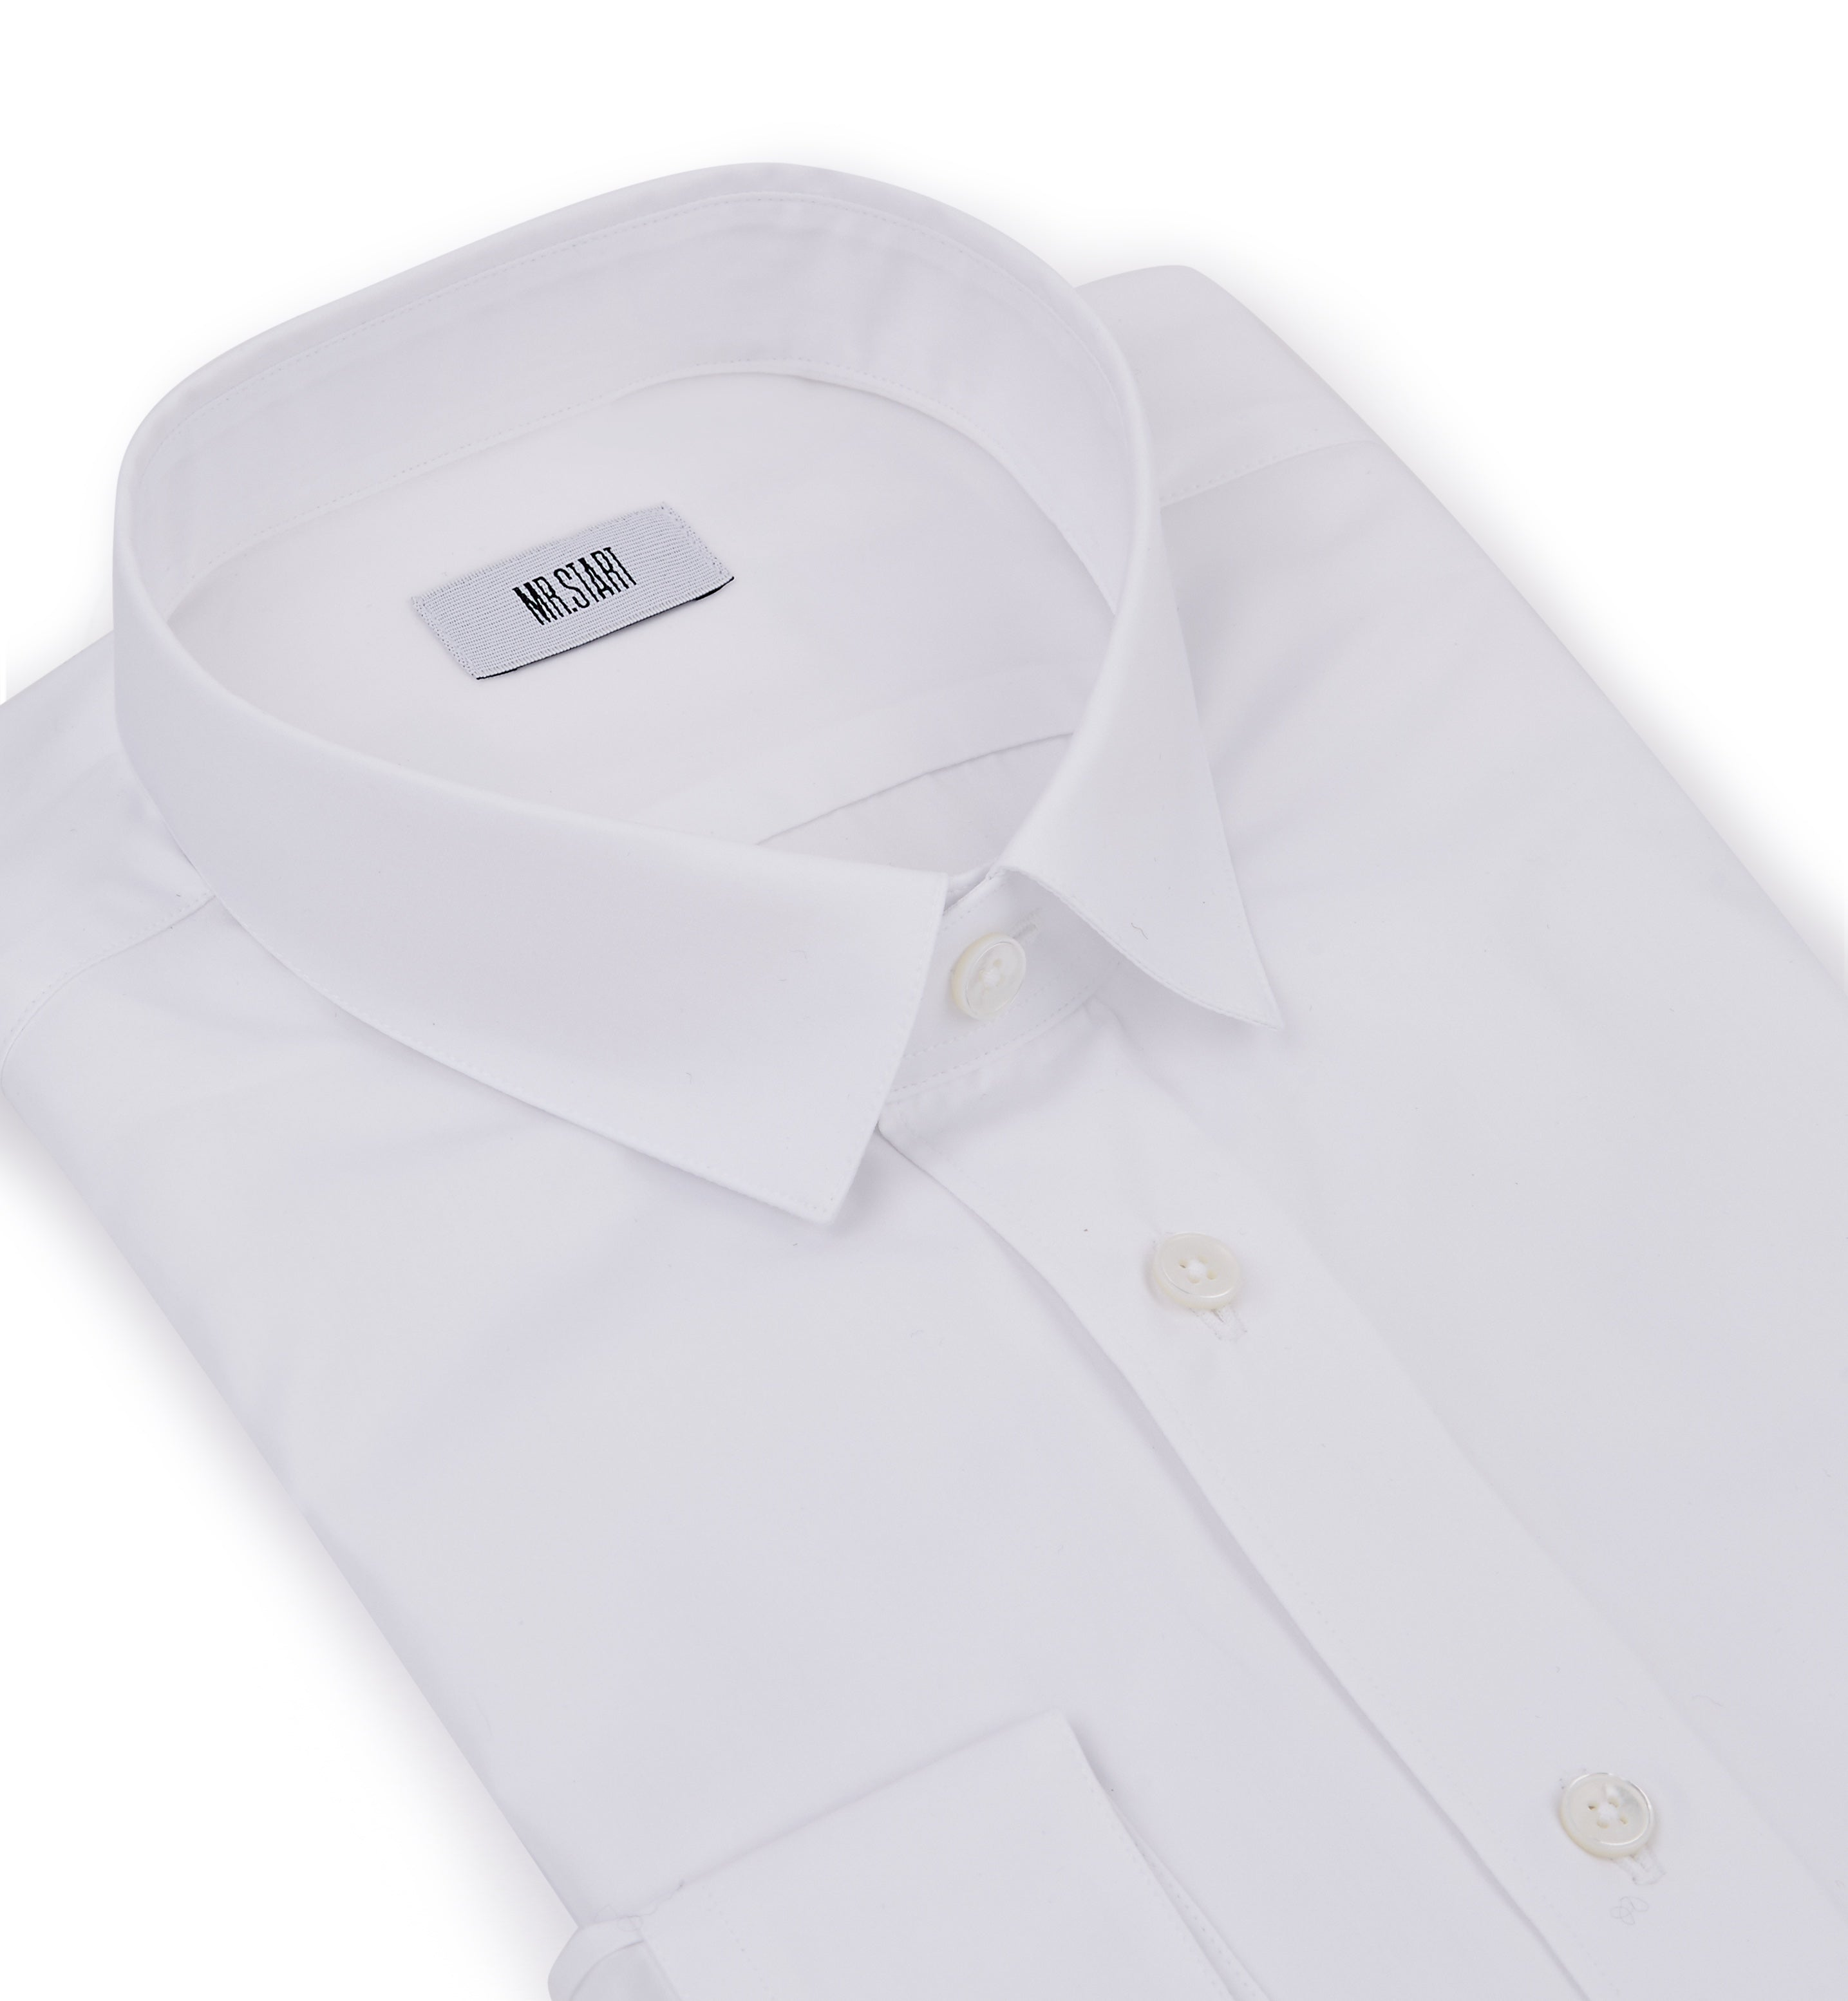 Simple mens slim shirt from Mr. Start